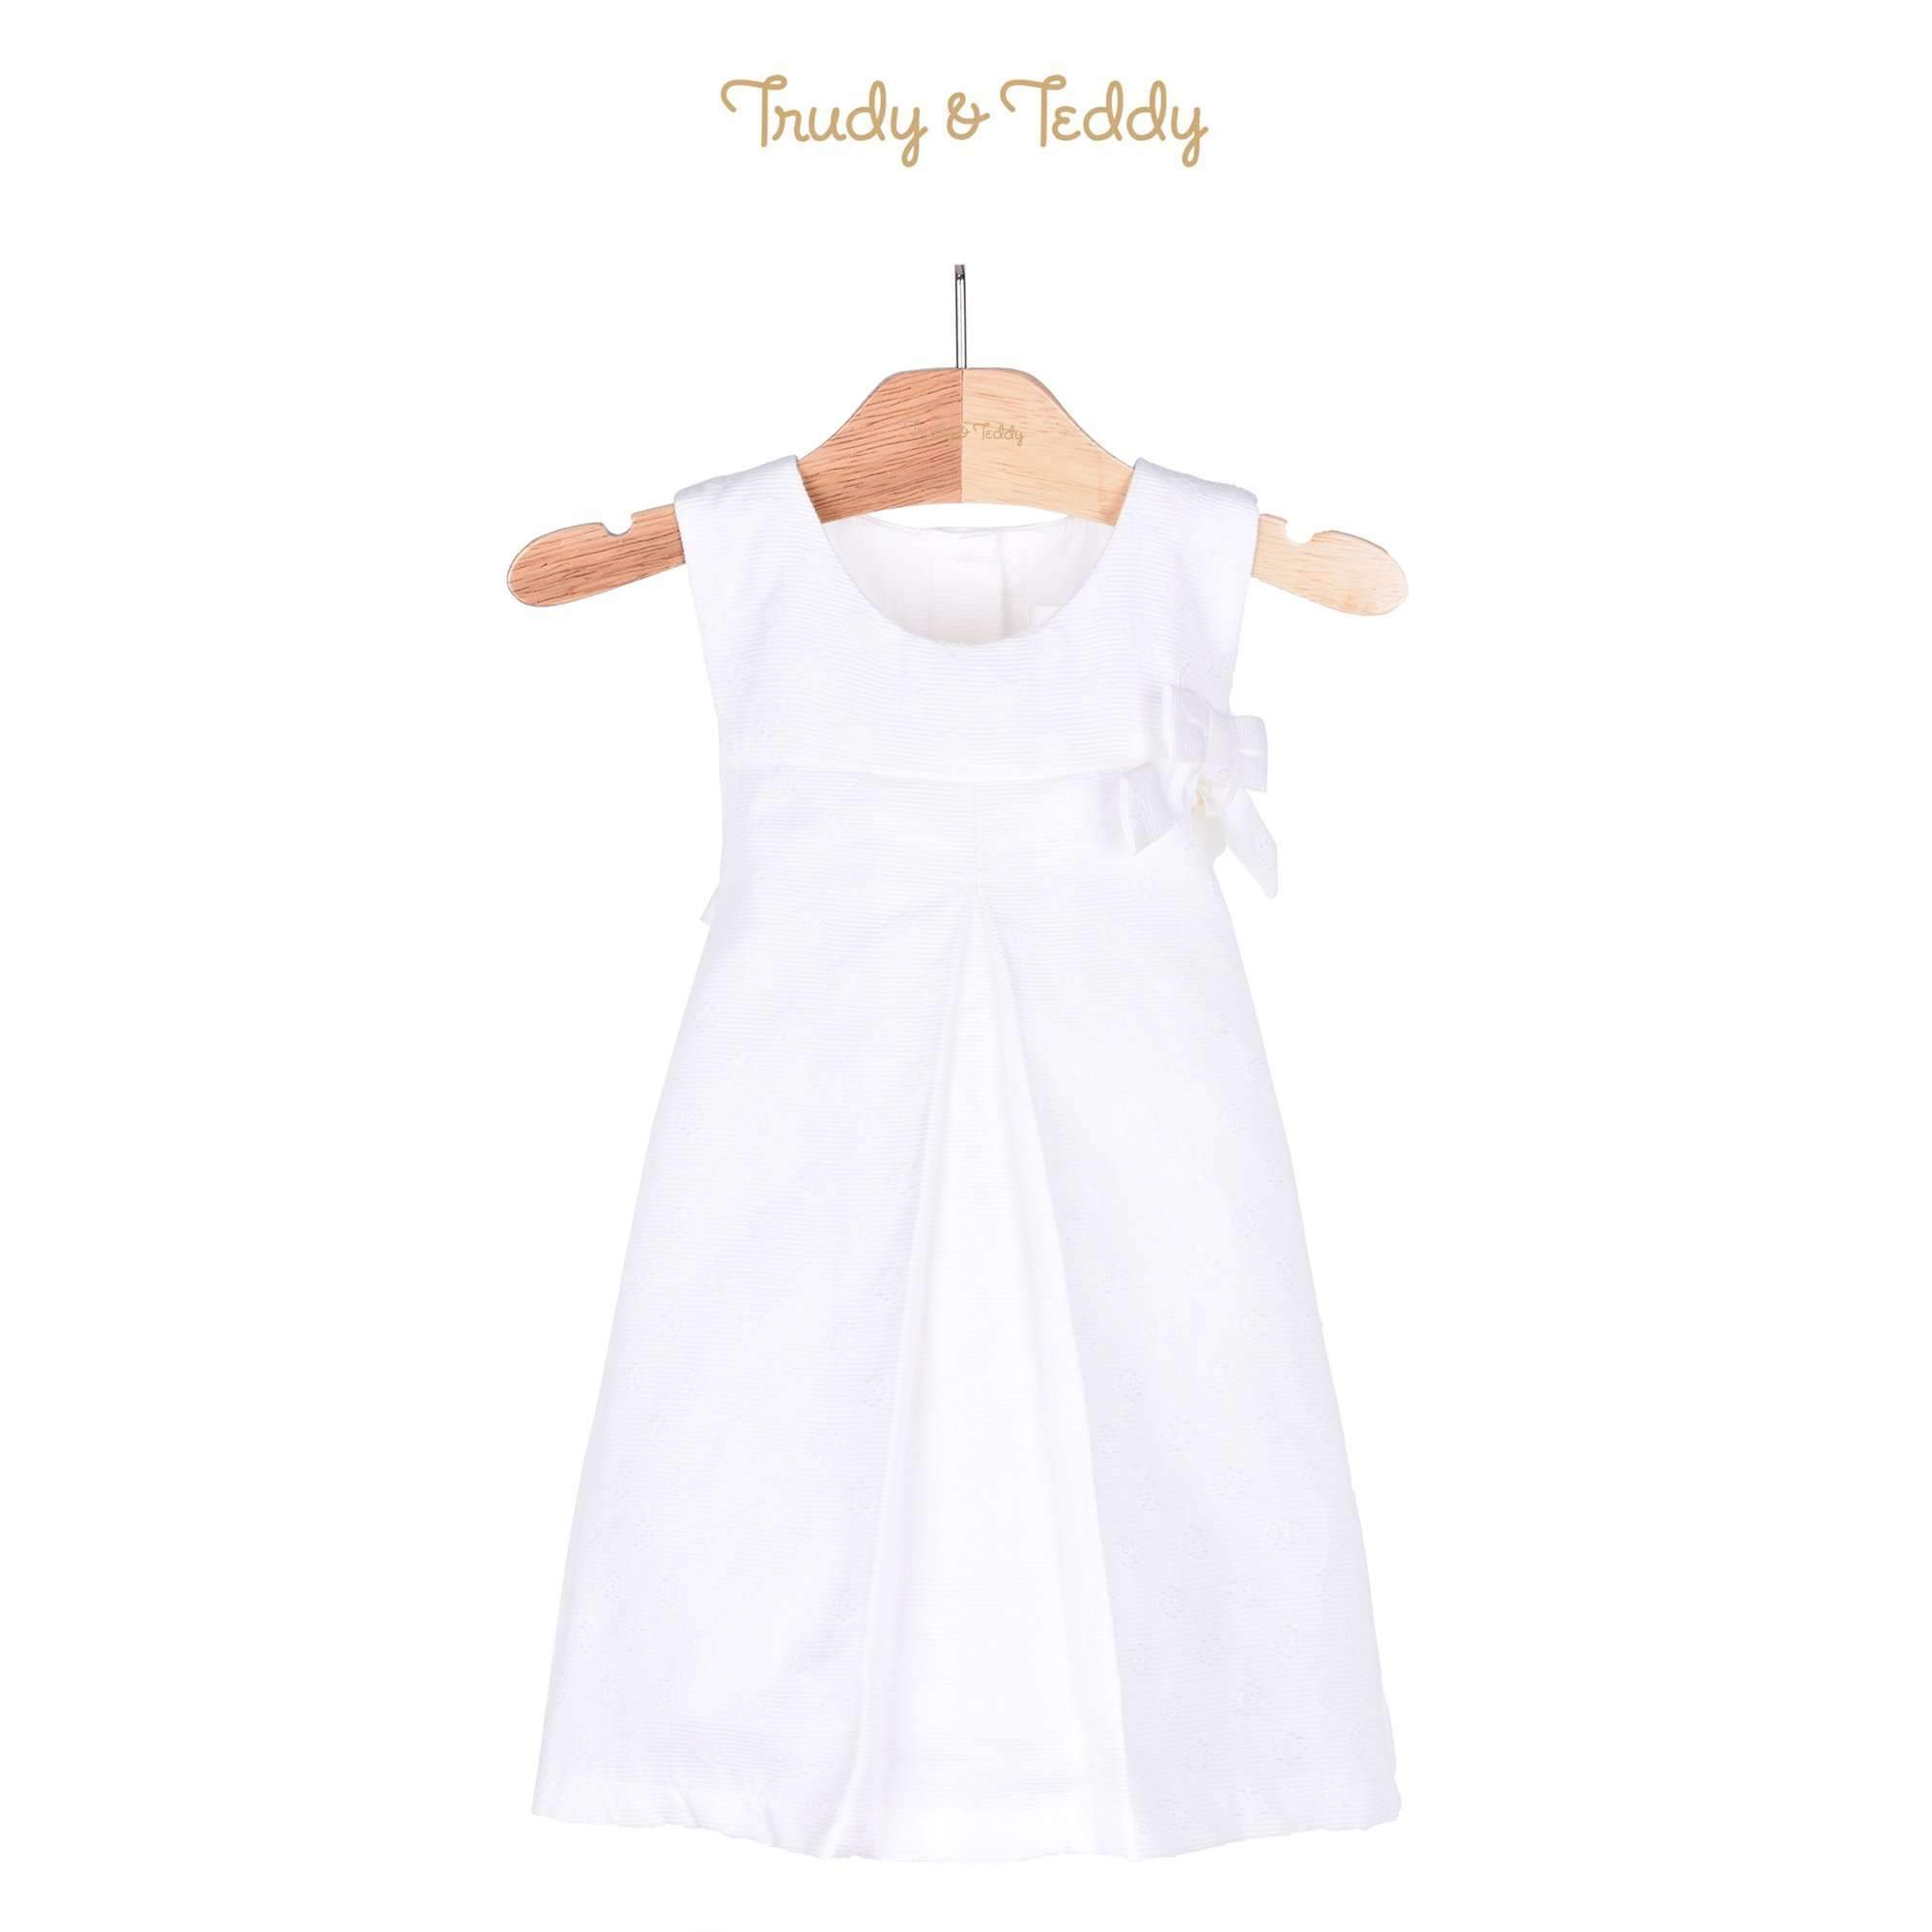 Trudy & Teddy Baby Girl Short Sleeve Dress 810086-311 : Buy Trudy & Teddy online at CMG.MY